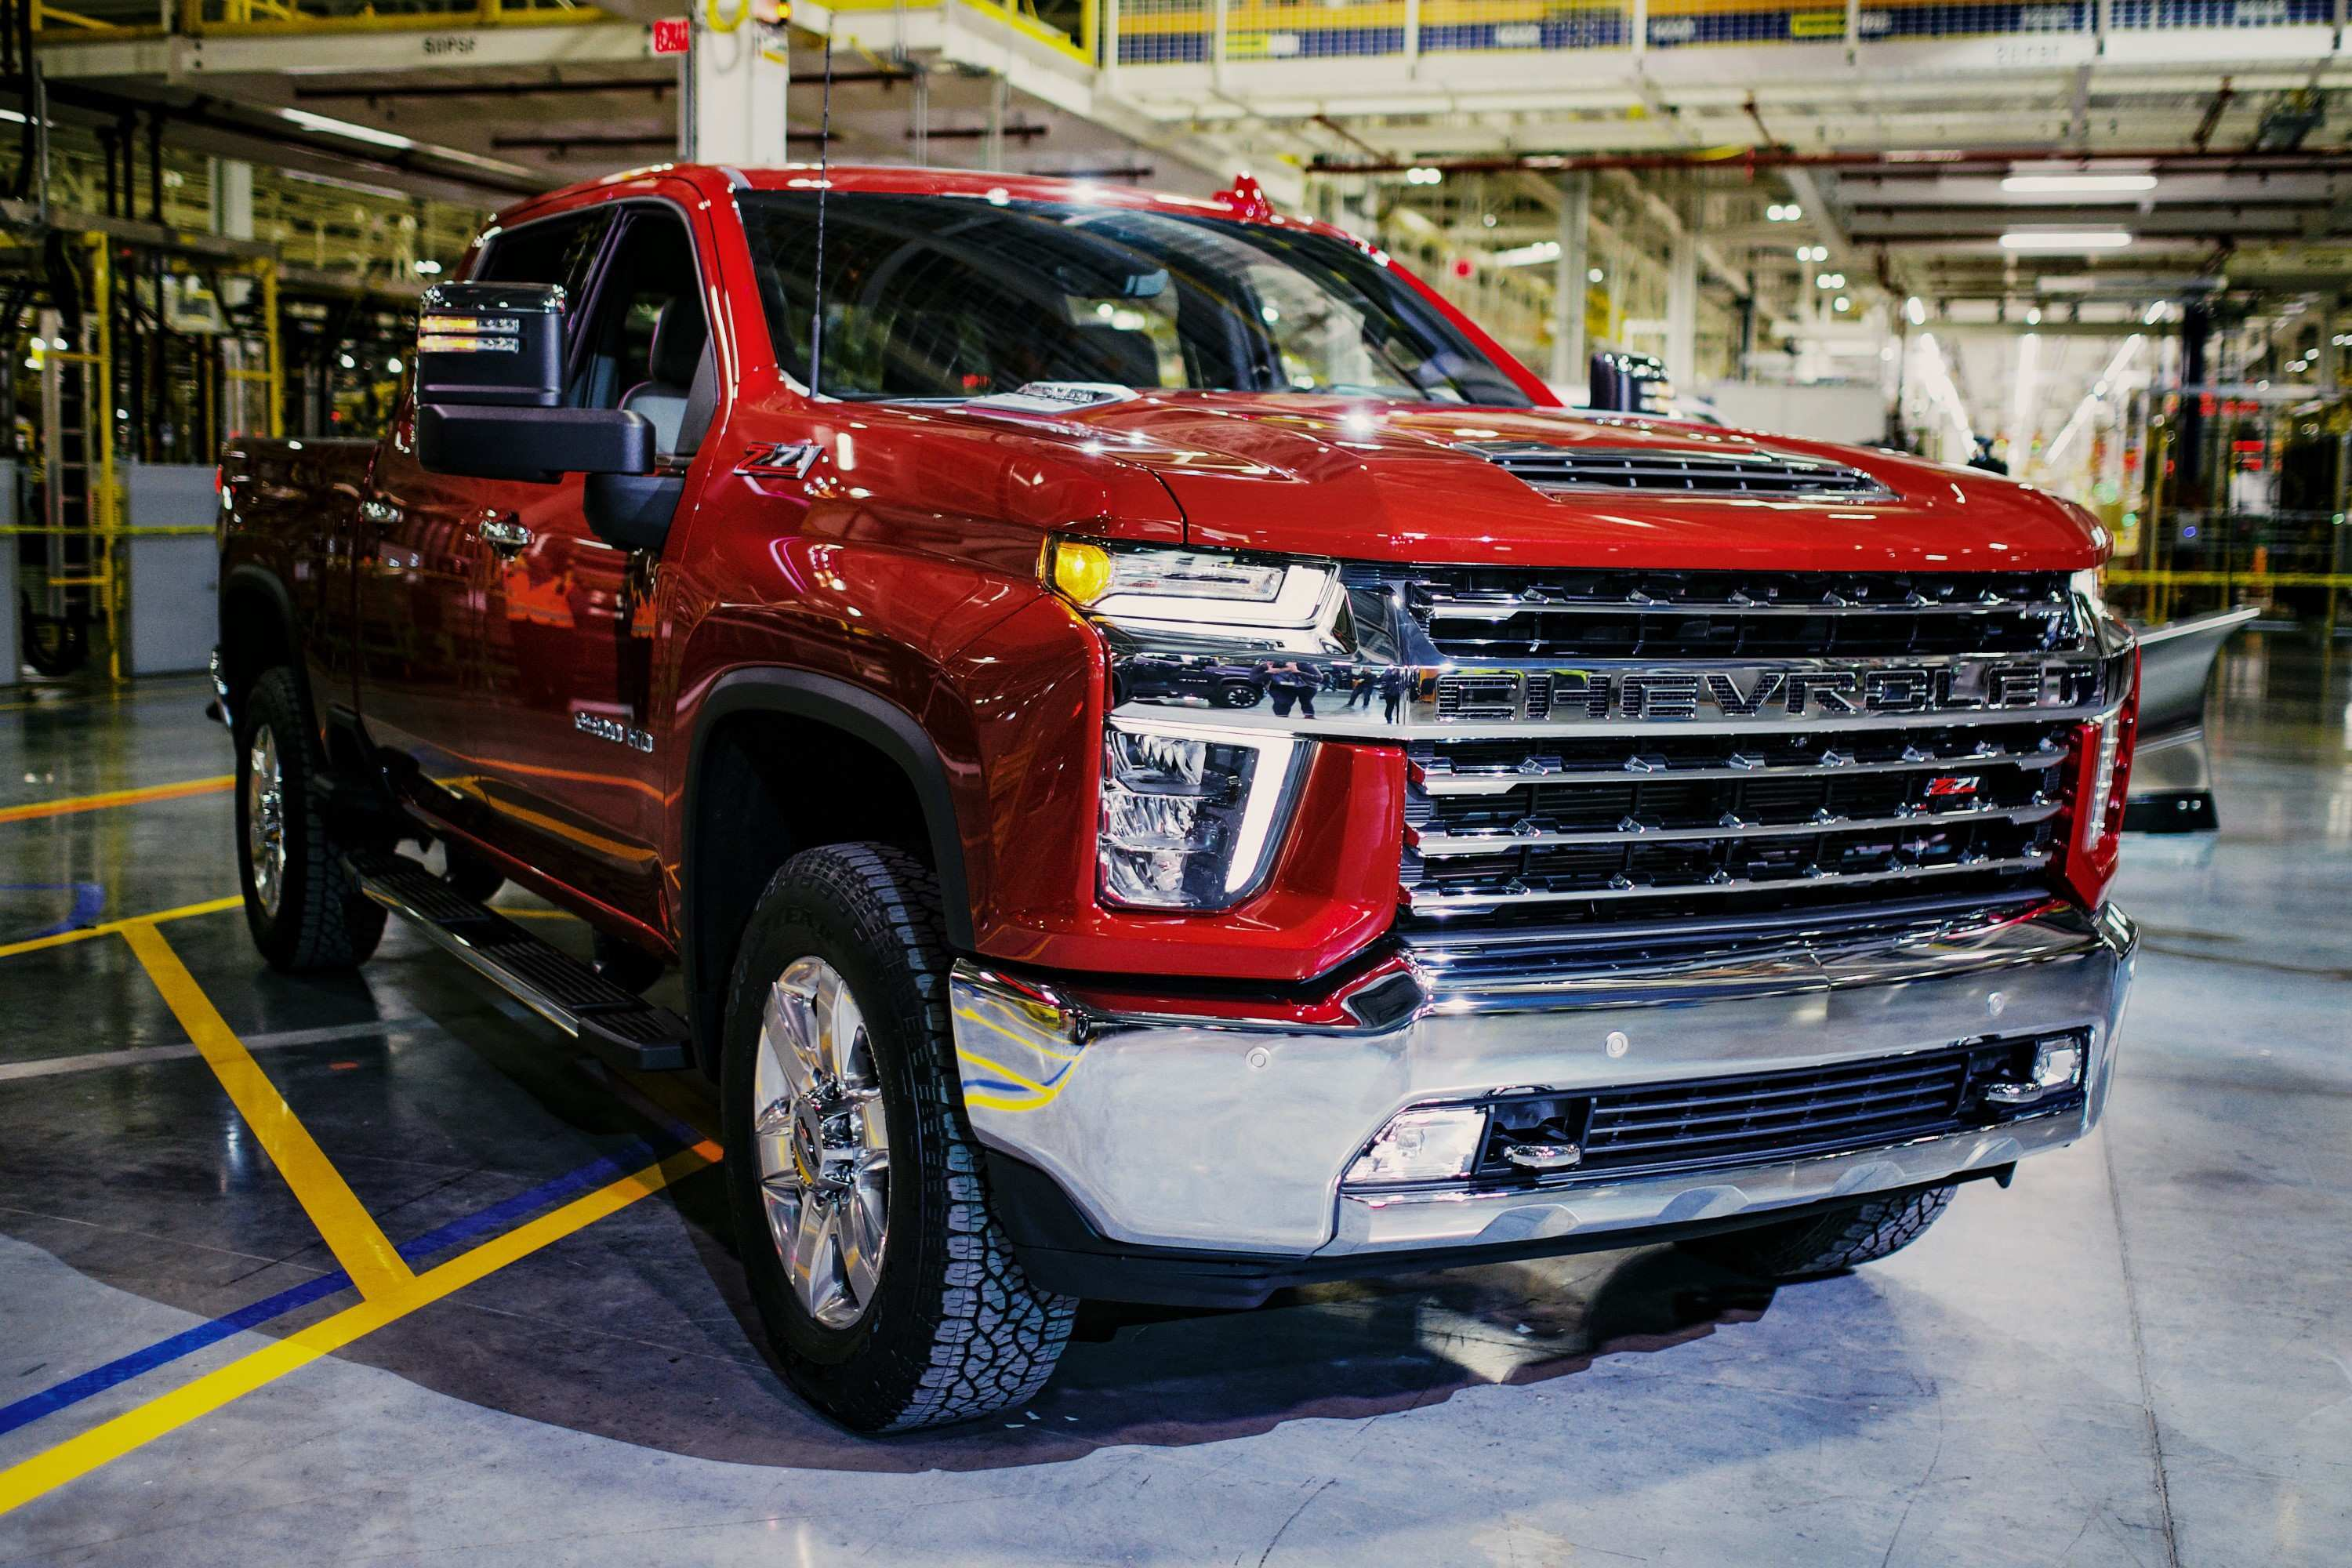 25 A 2020 Gmc Hd Truck Engines Redesign